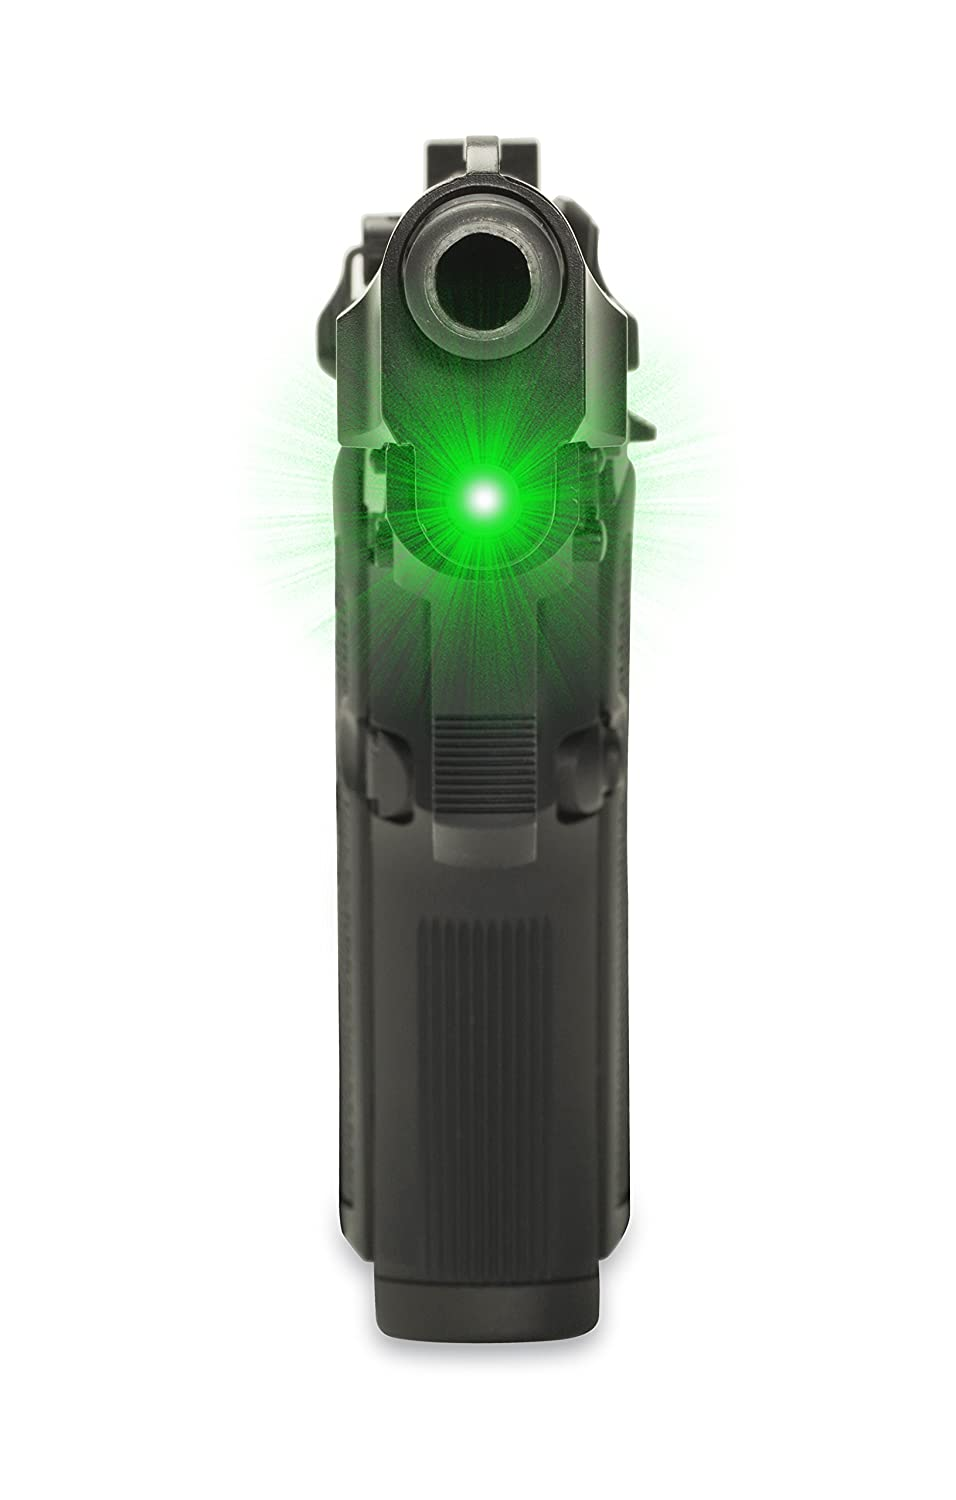 Guide Rod Laser Green For Use On Beretta 92 96 Full Exploded View Of The Taurus Pt92 Af Also Sig 1911 Diagram Size 99 100 101 Sports Outdoors